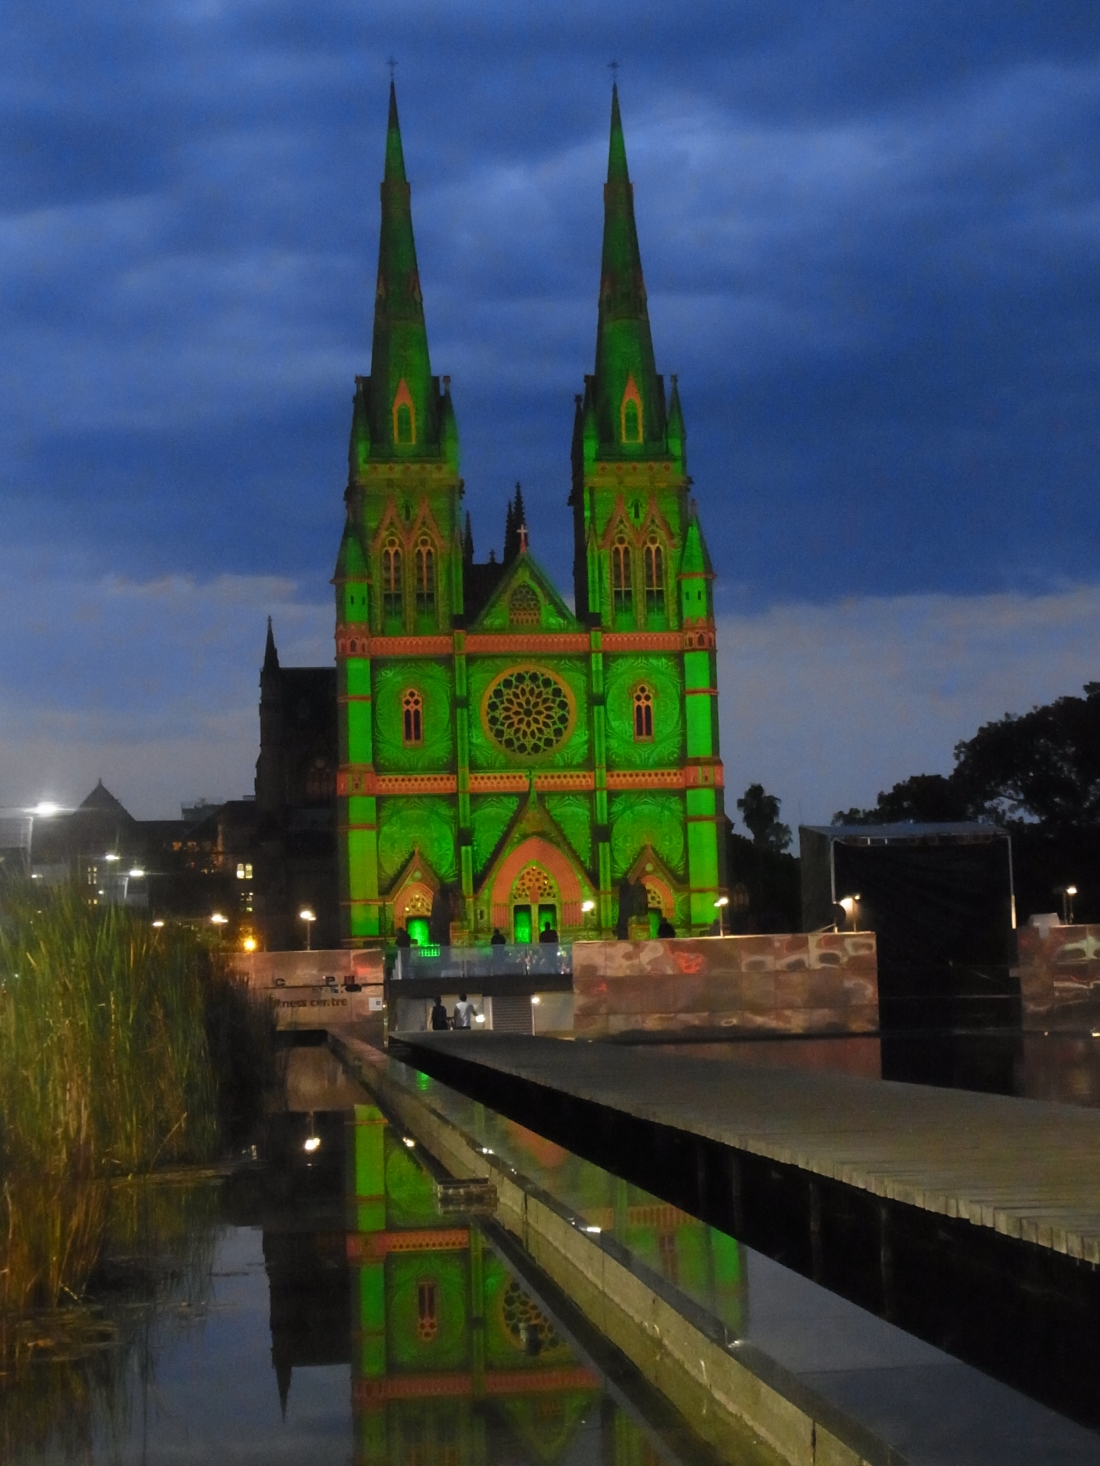 St. Mary's Cathedral in Sydney